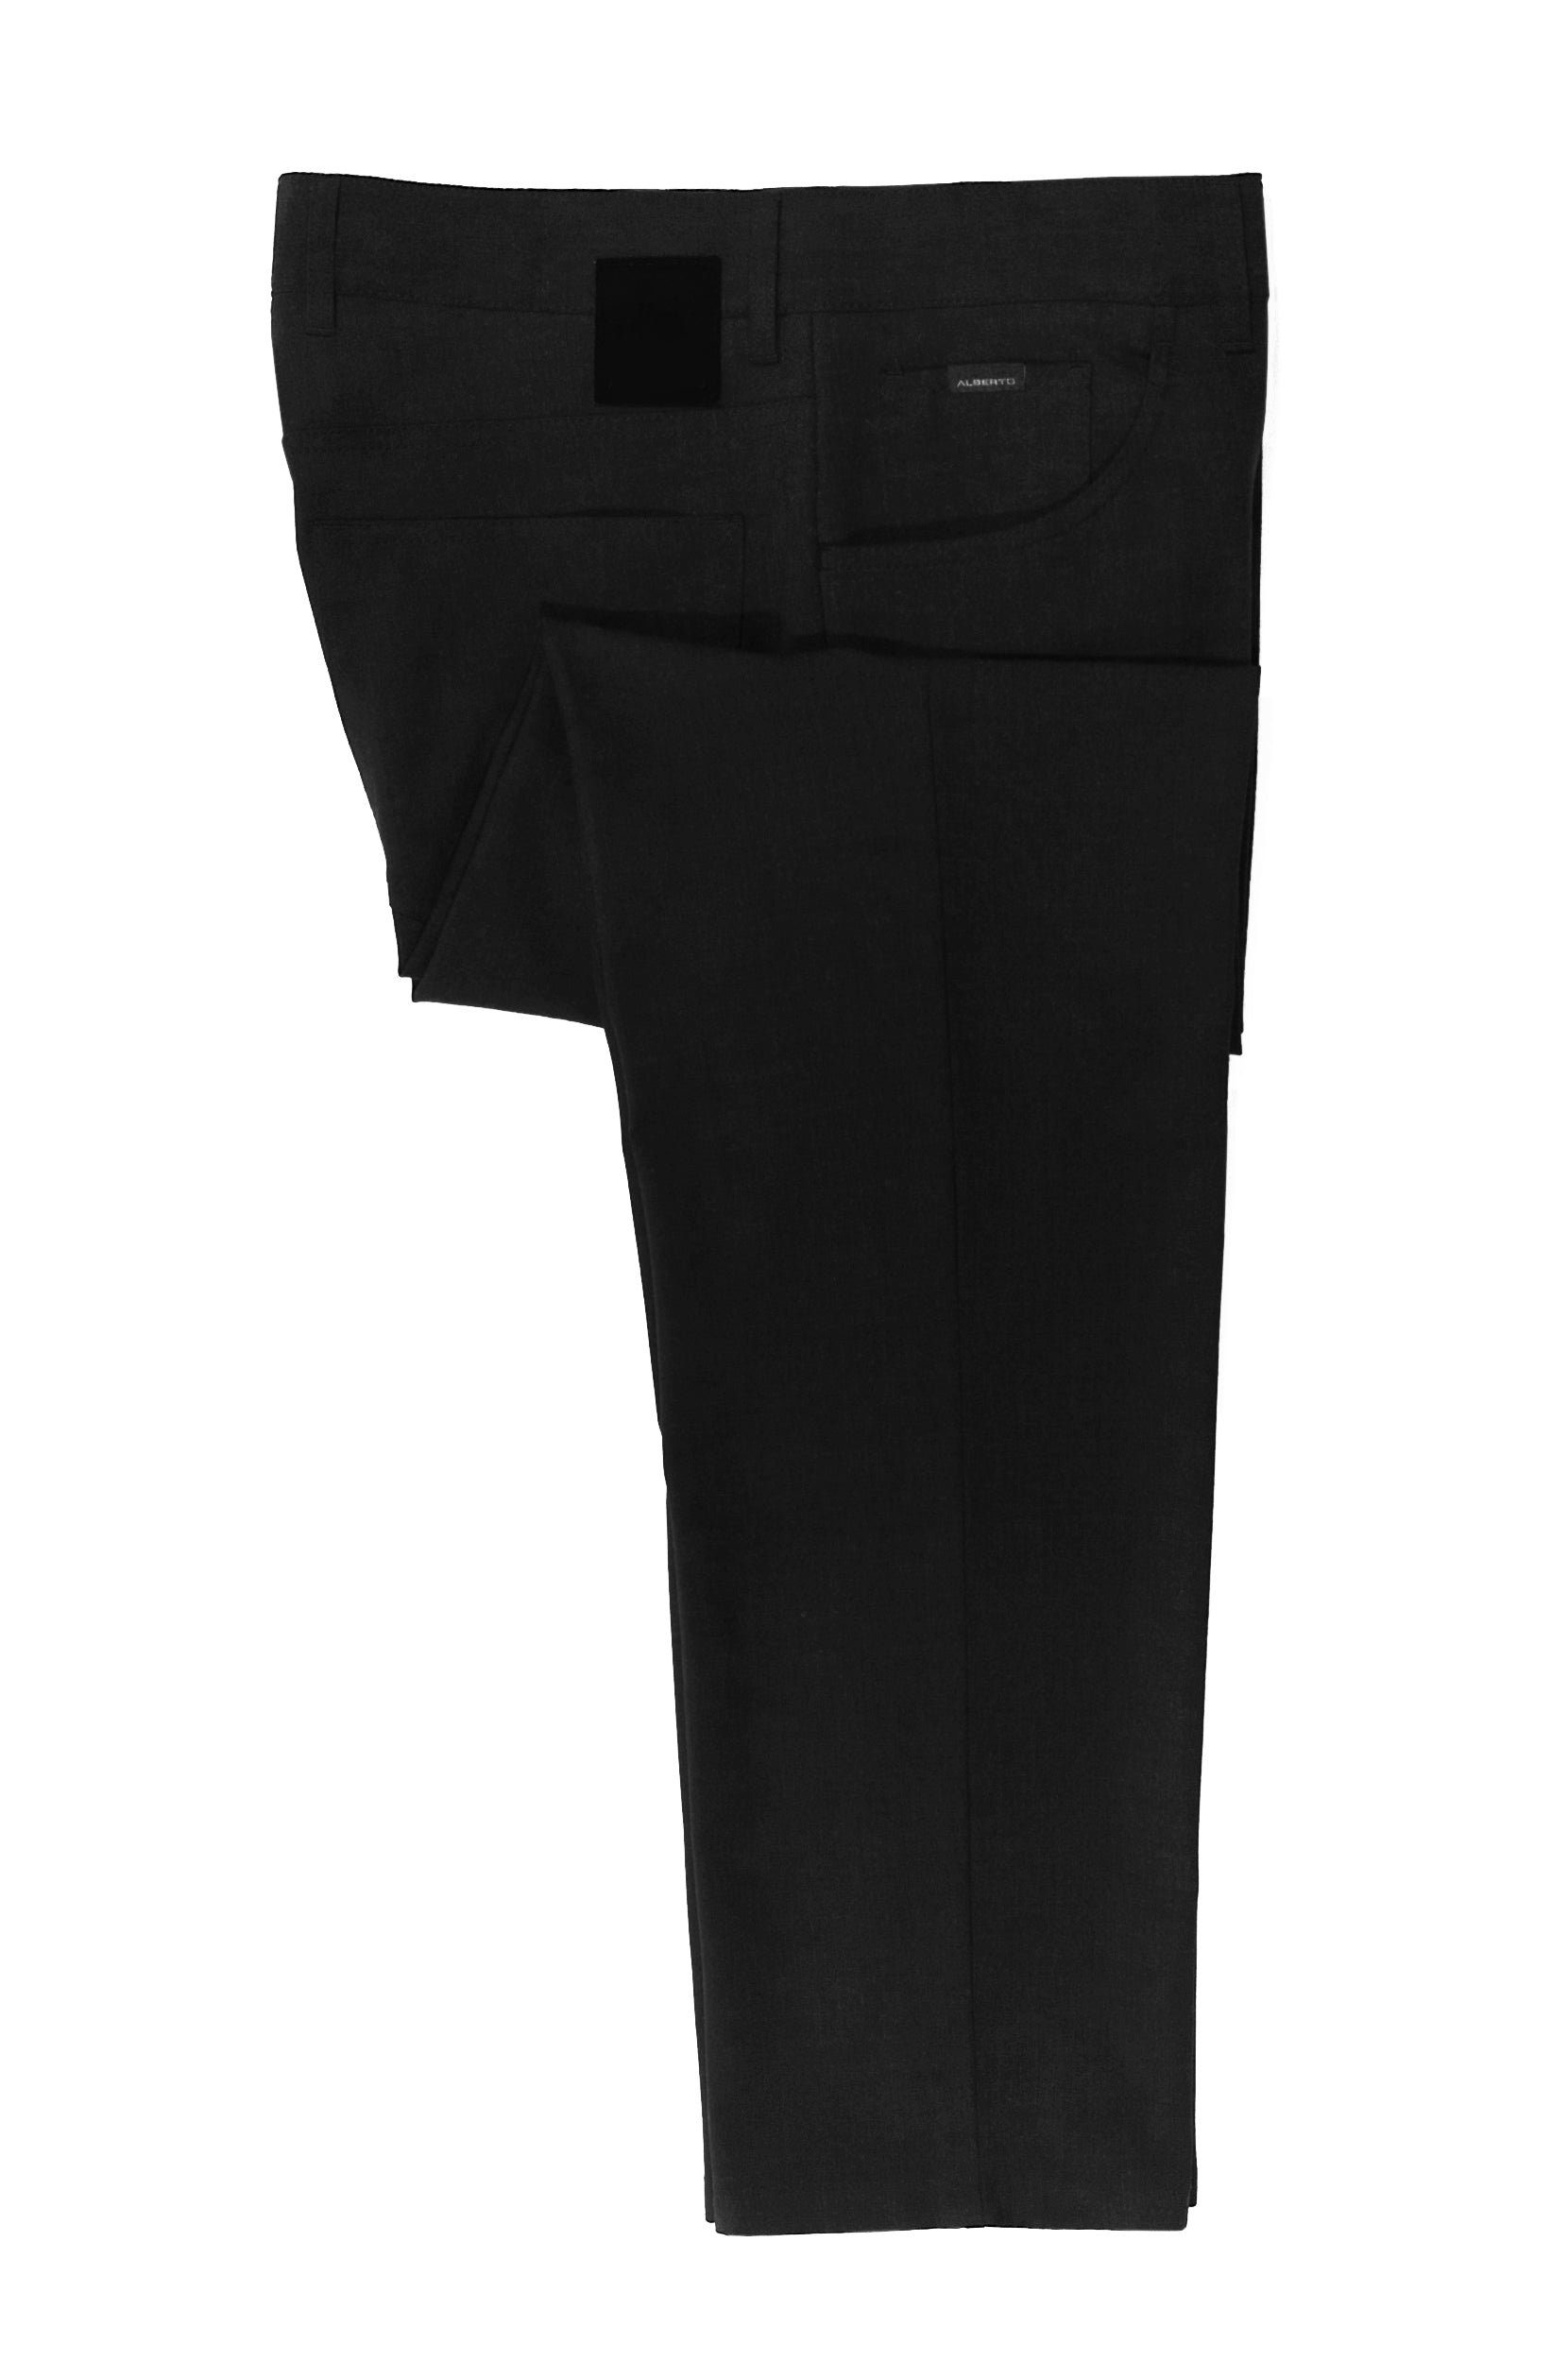 Alberto Black Tom Comfort Fit Ceramica Pants for Luxmrkt.com Menswear Consignment Edmonton